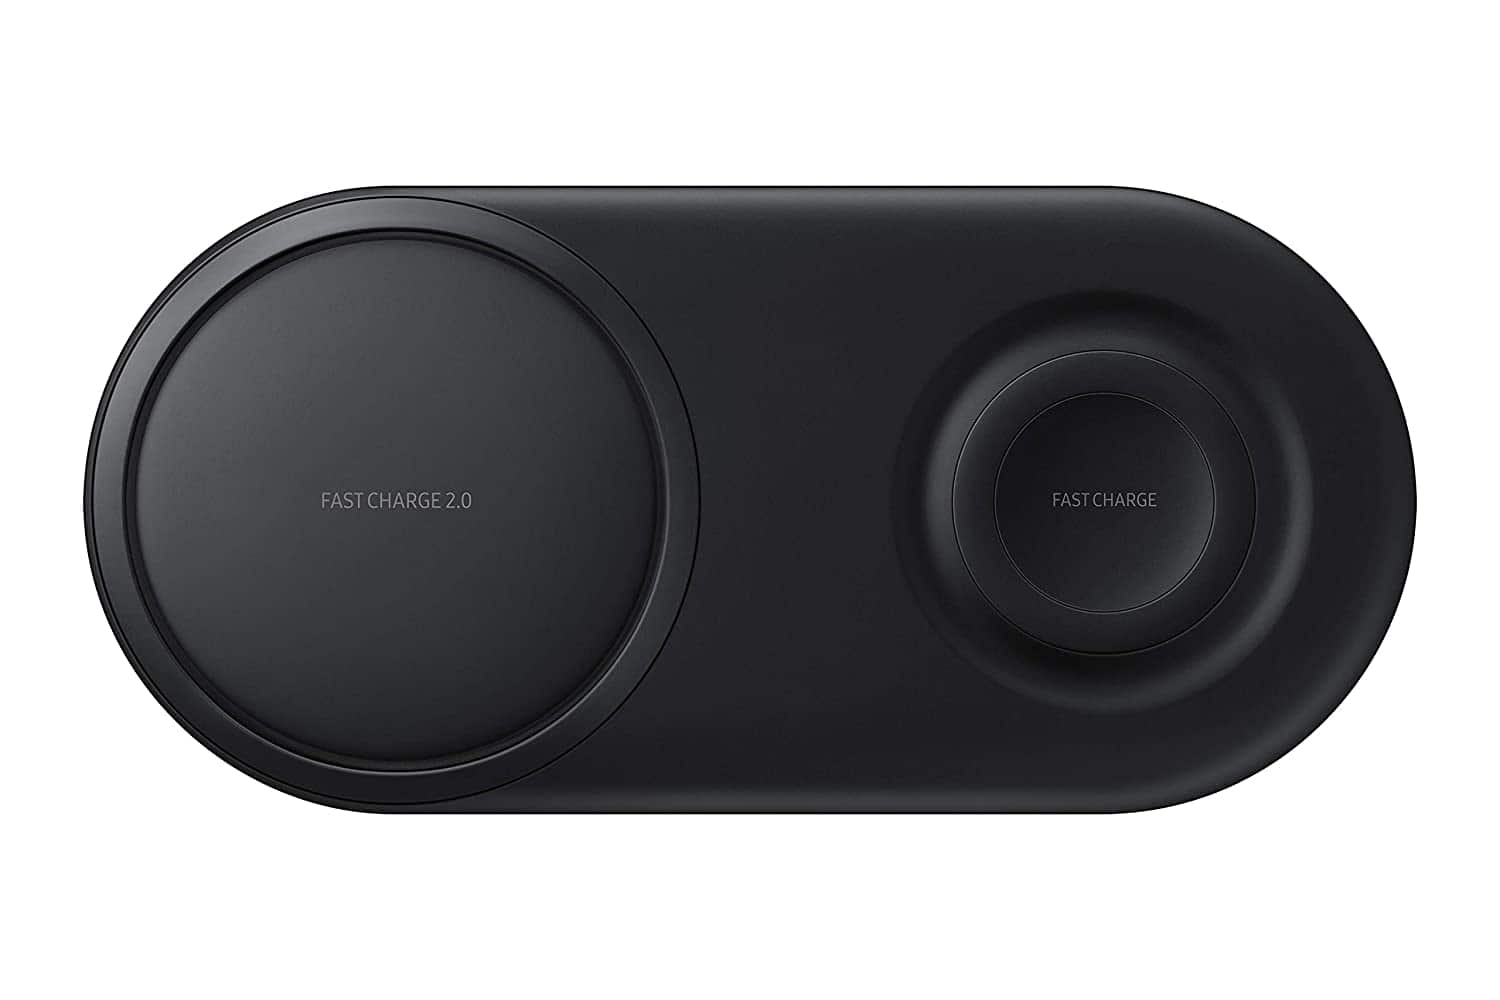 Samsung Wireless Charger Duo Pad Black 12W EP-P5200TBEGUS $57.50 + FS Amazon